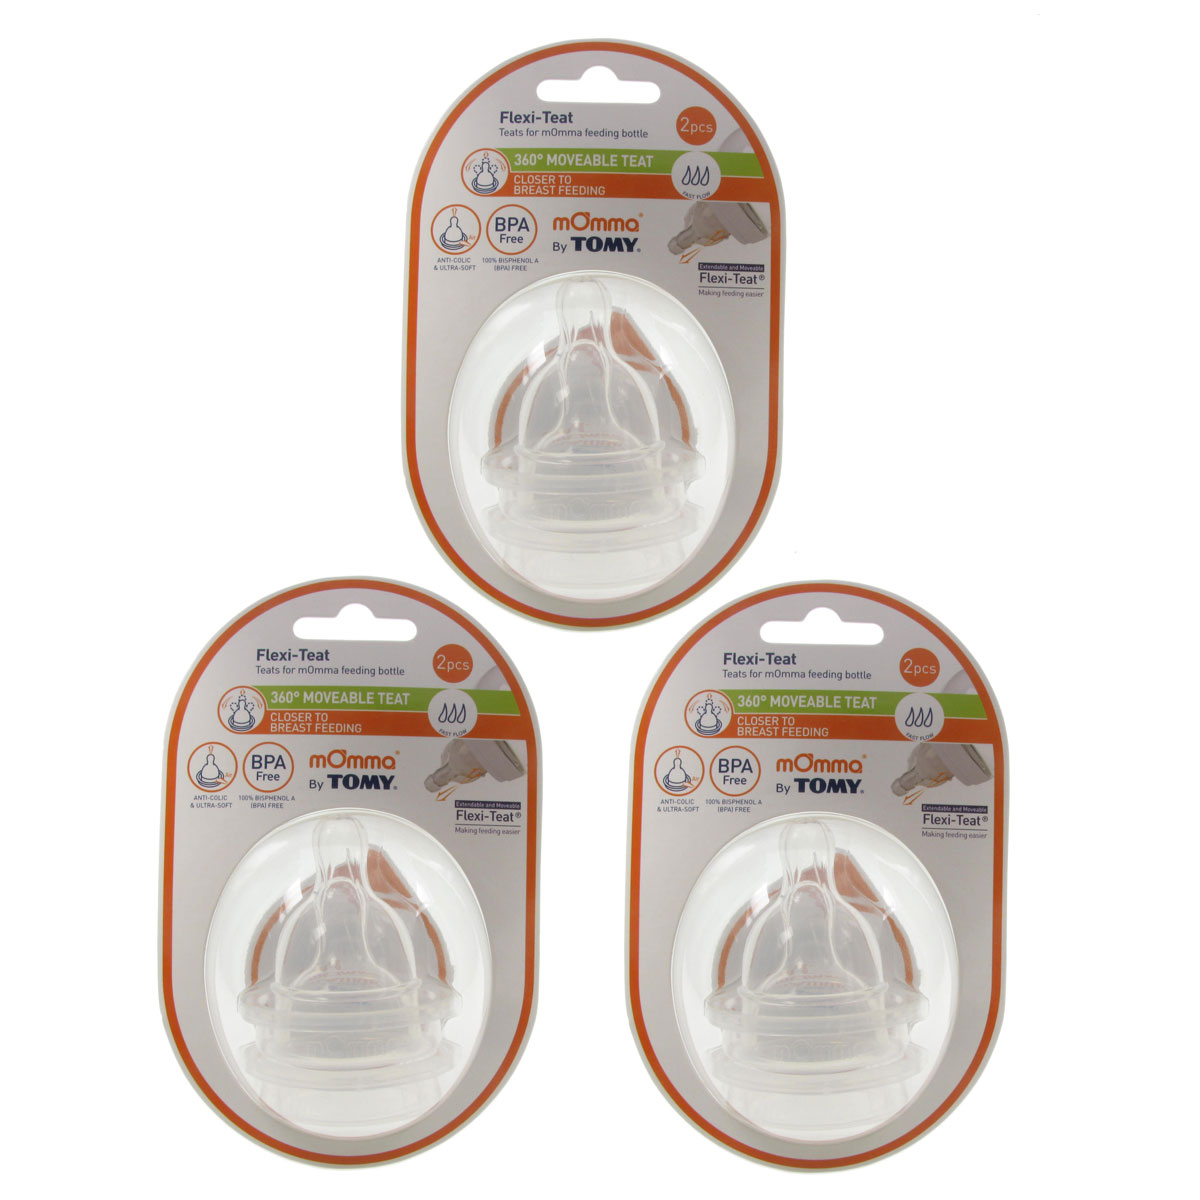 3 x Tomy mOmma FLEXI-TEAT (Moveable Teat) FAST FLOW 2 Piece Pack BPA Free Baby Enlarged Preview